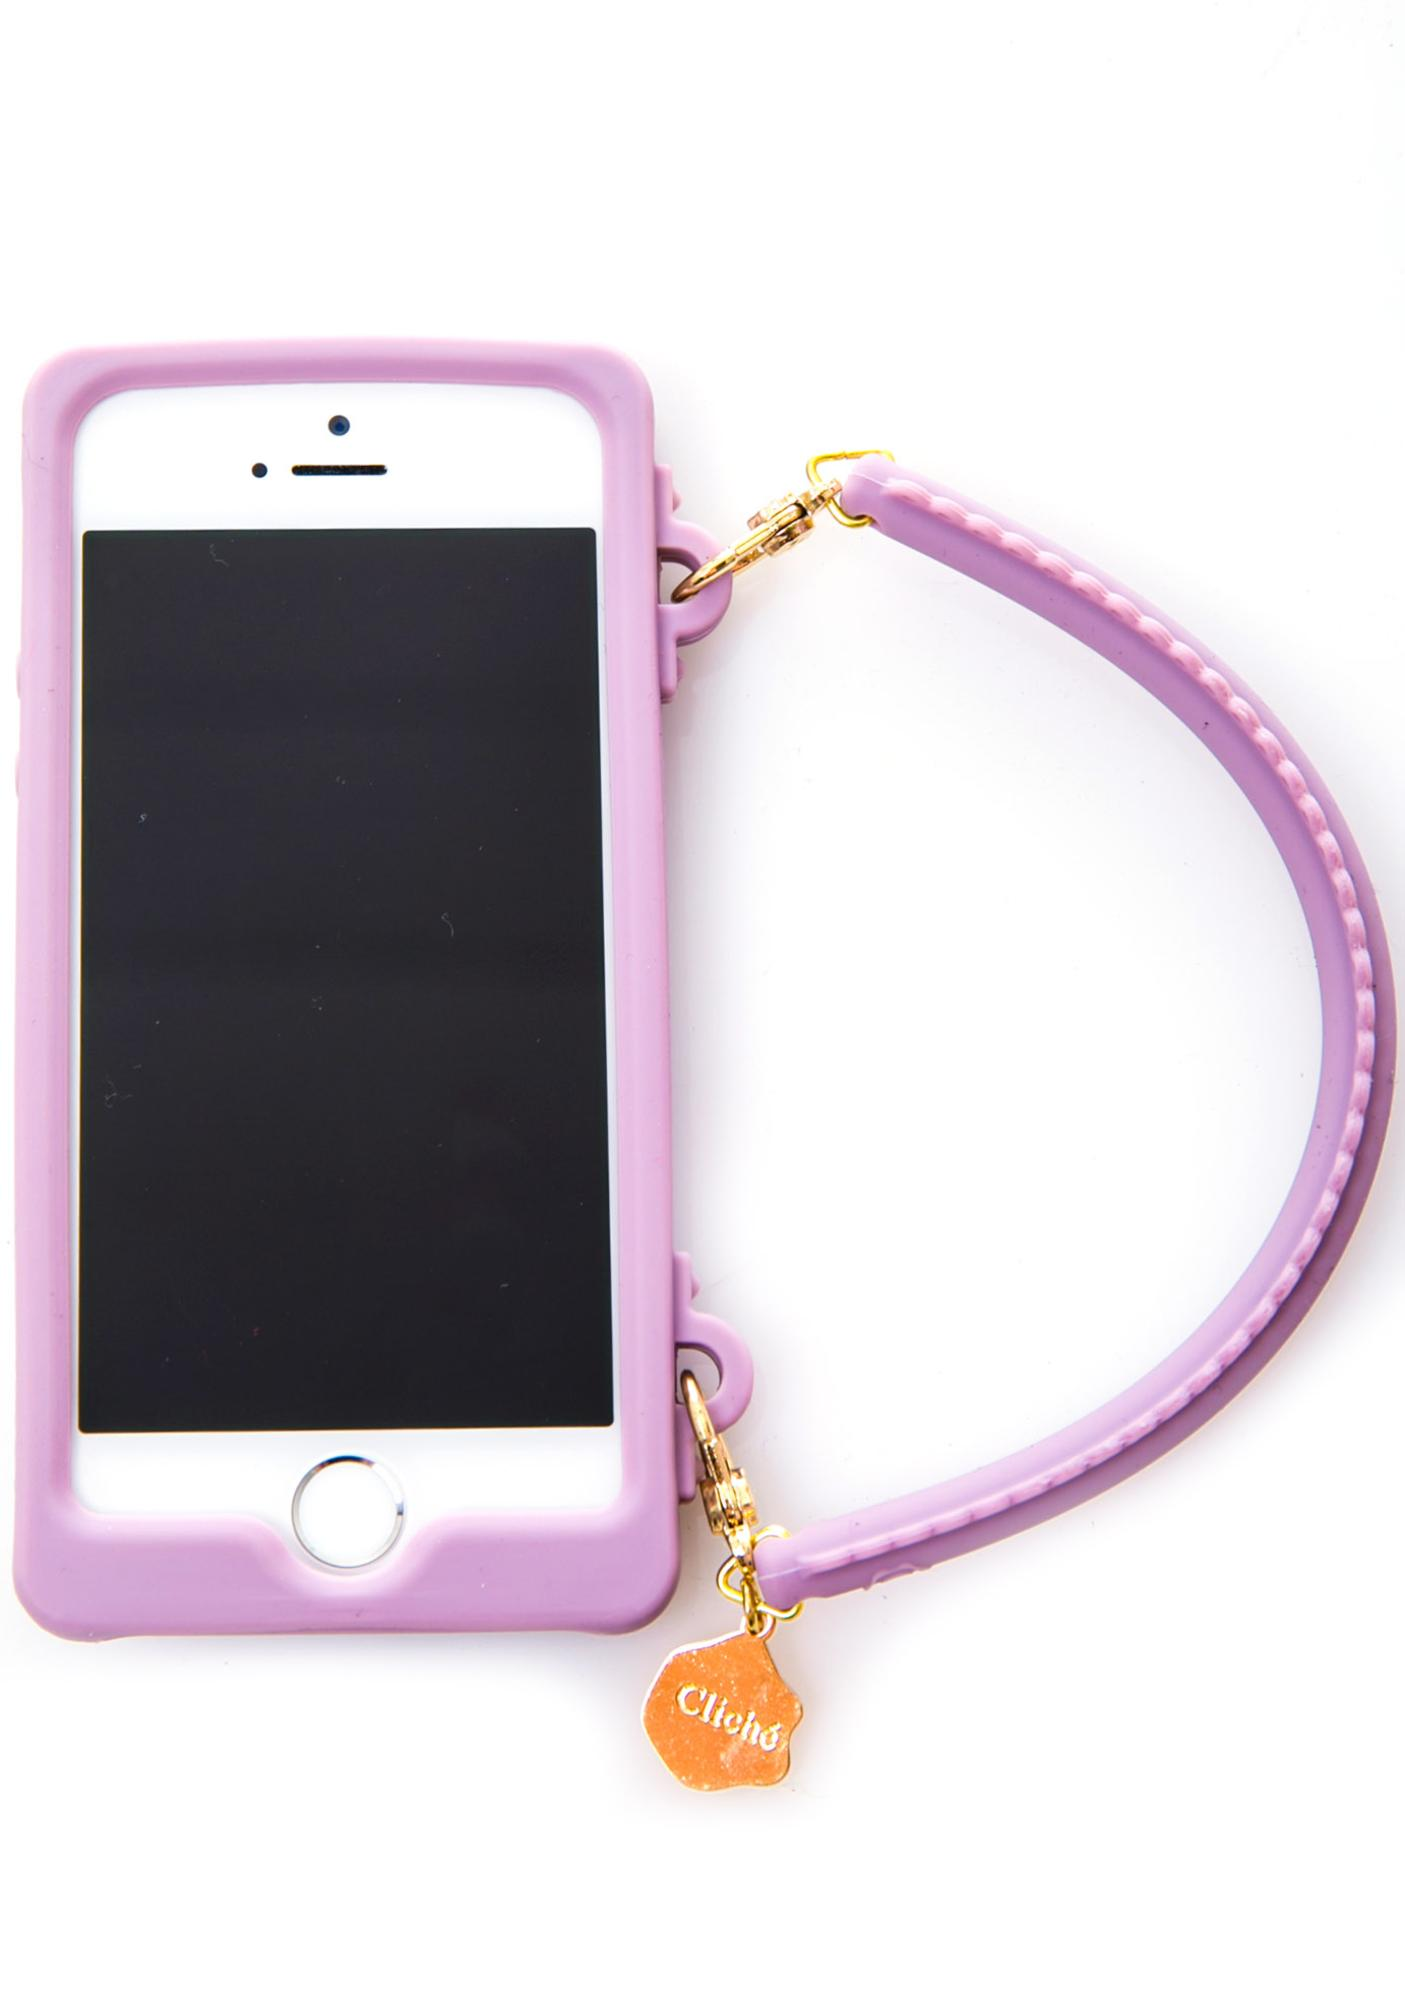 Curvy iPhone 5 Case